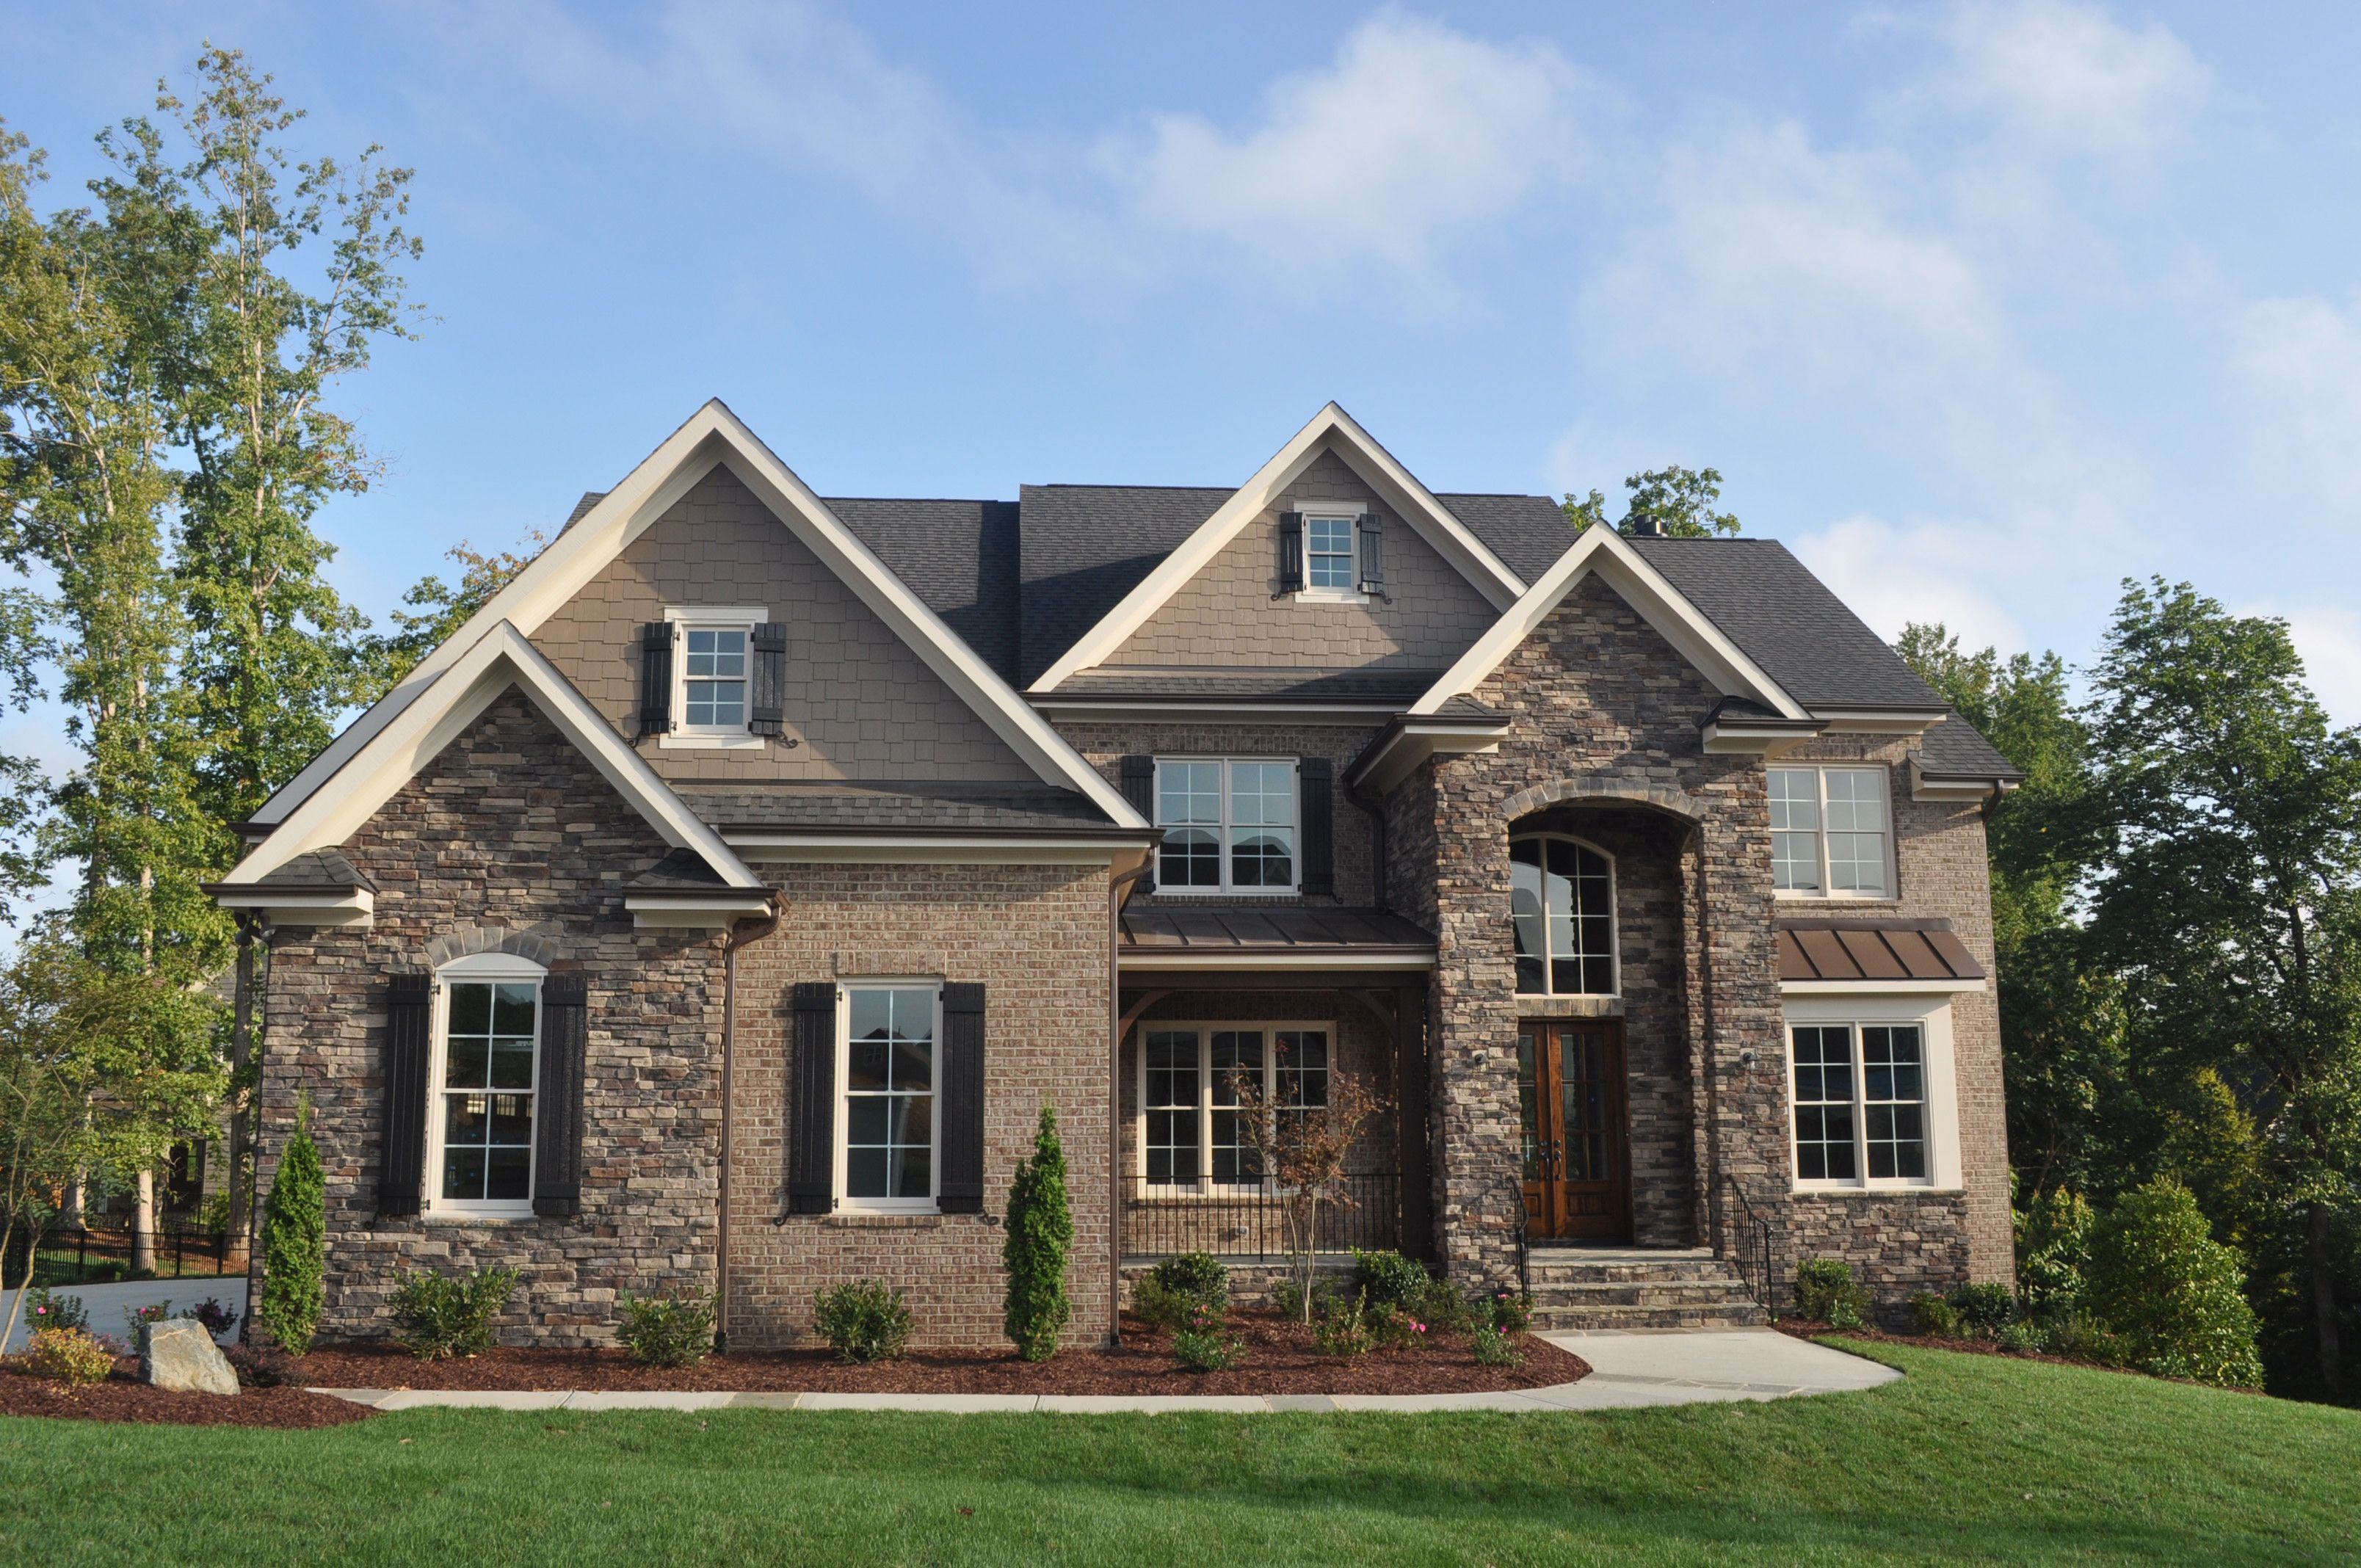 Brick And Stone Exterior Combinations Brick And Stone Exterior With A Little Siding Exterior